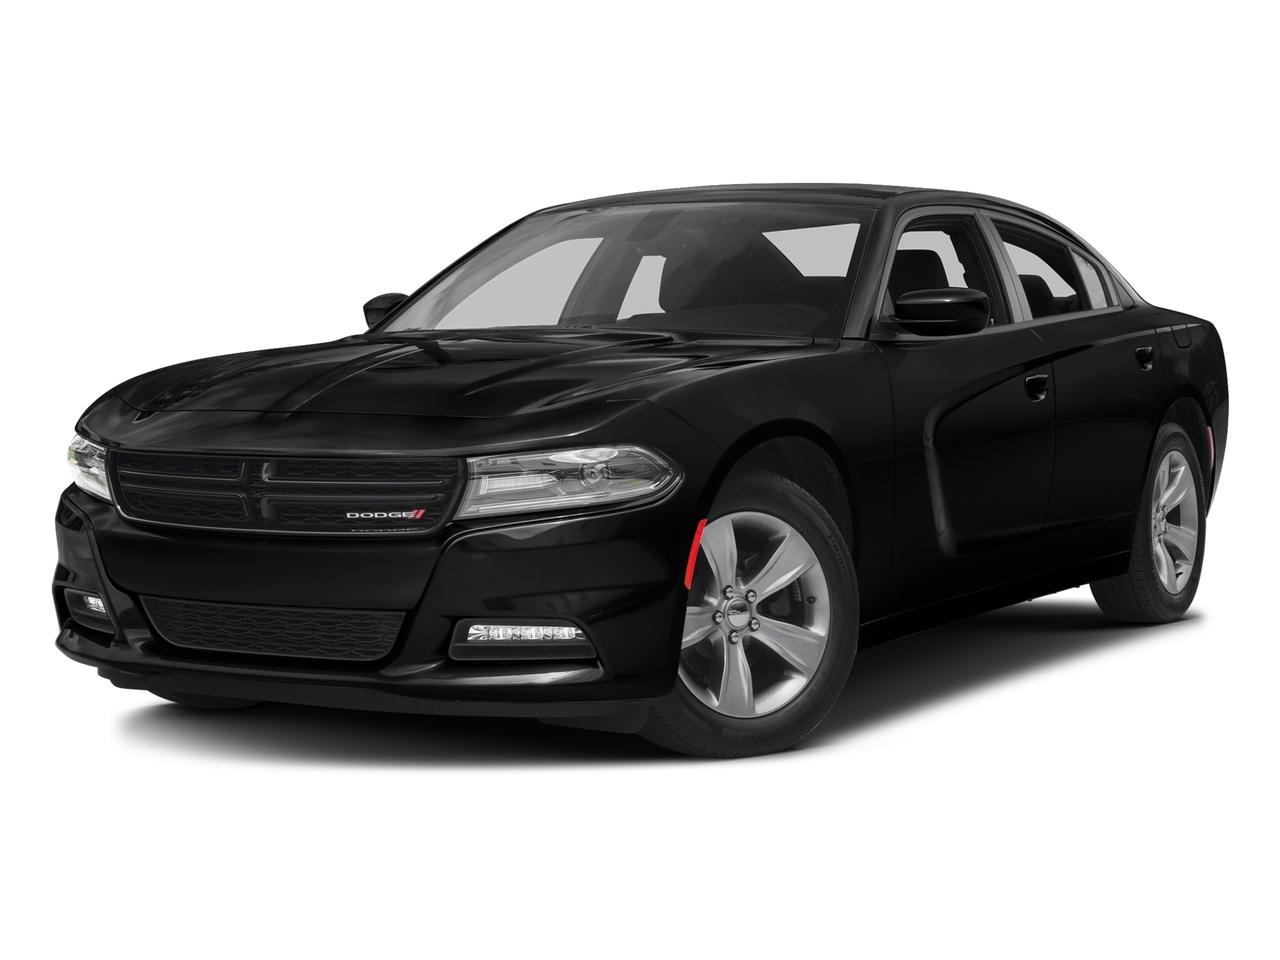 2016 Dodge Charger Vehicle Photo in Independence, MO 64055